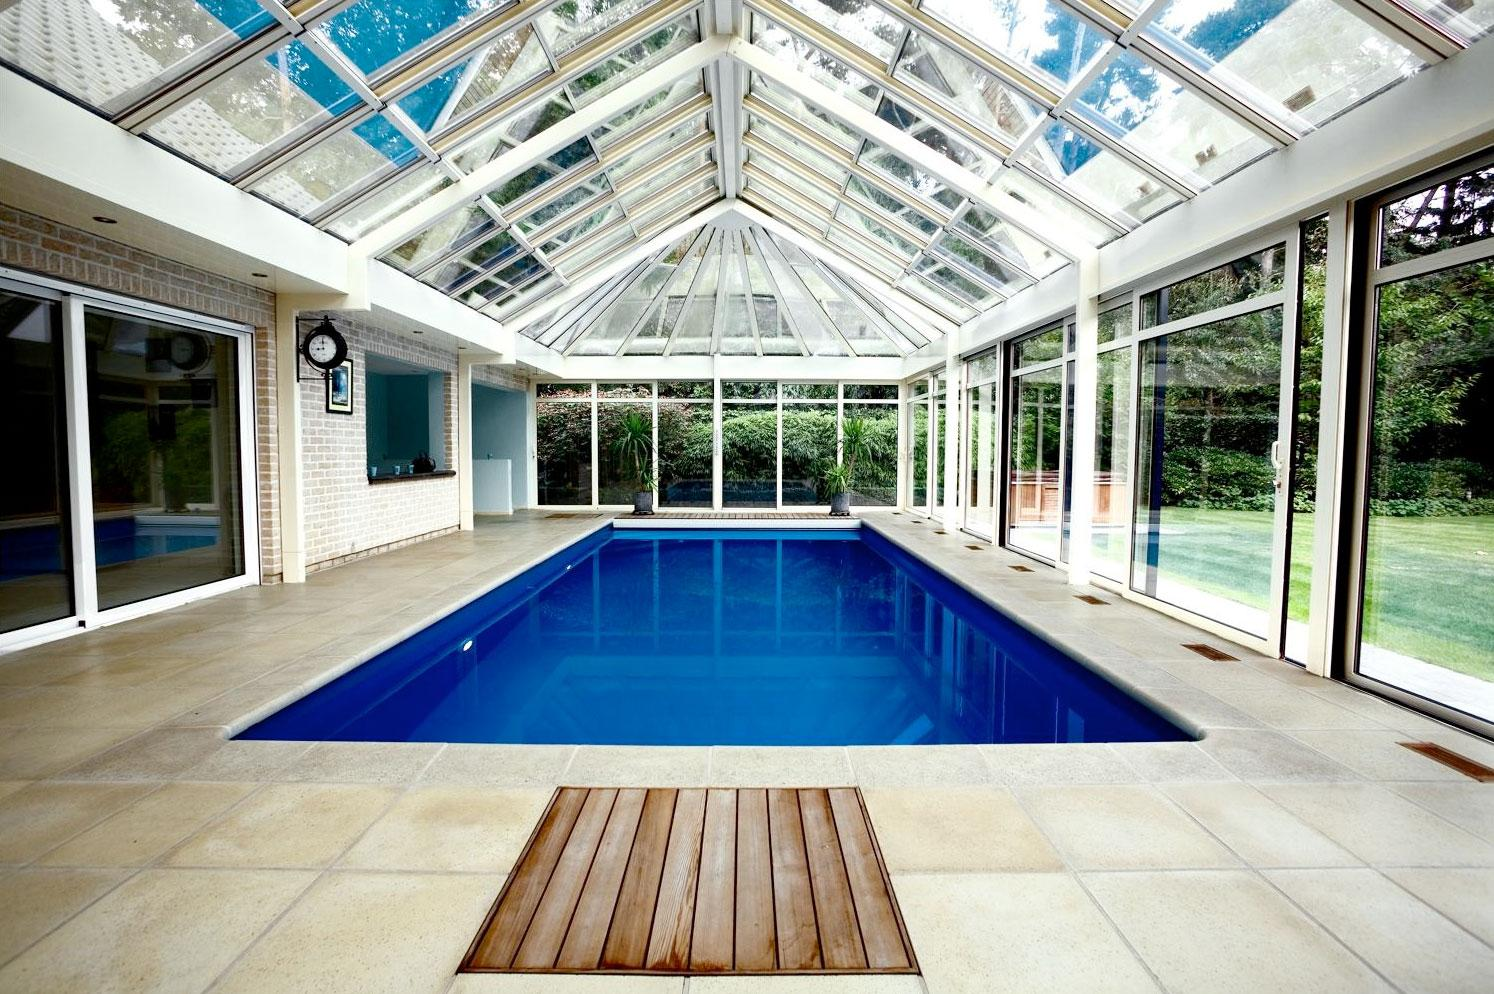 50 Beautiful Indoor Swimming Pool Design Ideas for Your Home